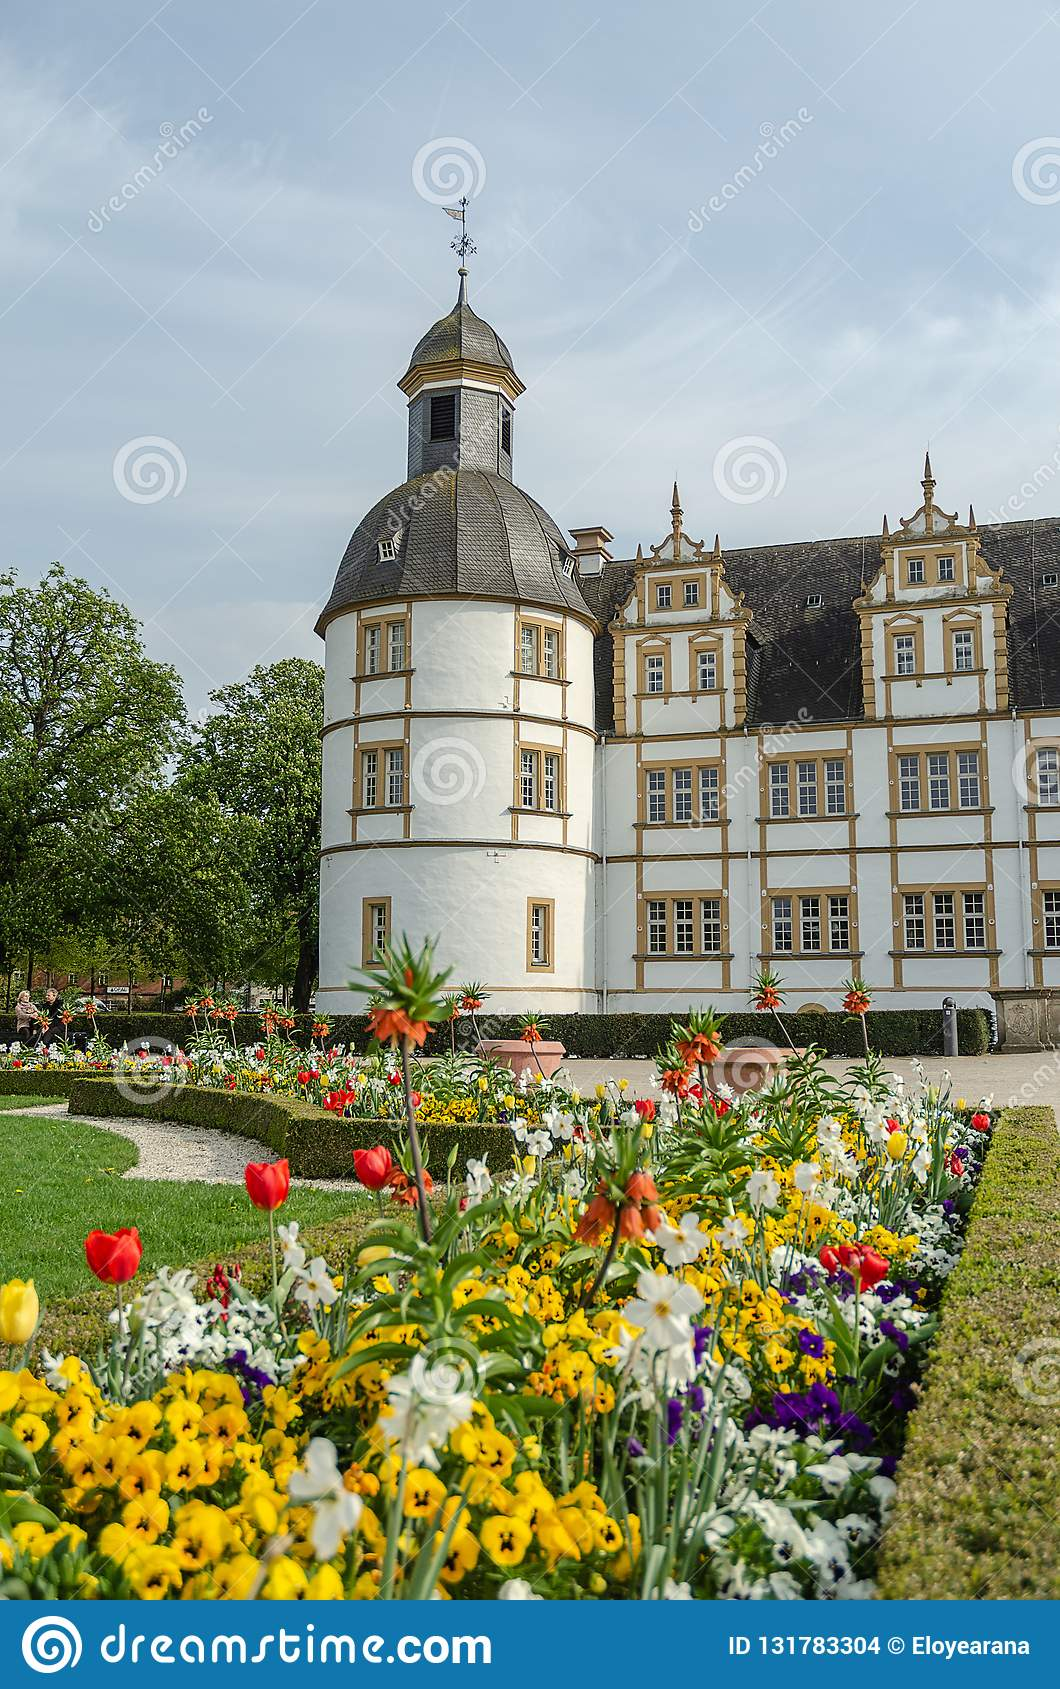 Paderborn, with full of flowers